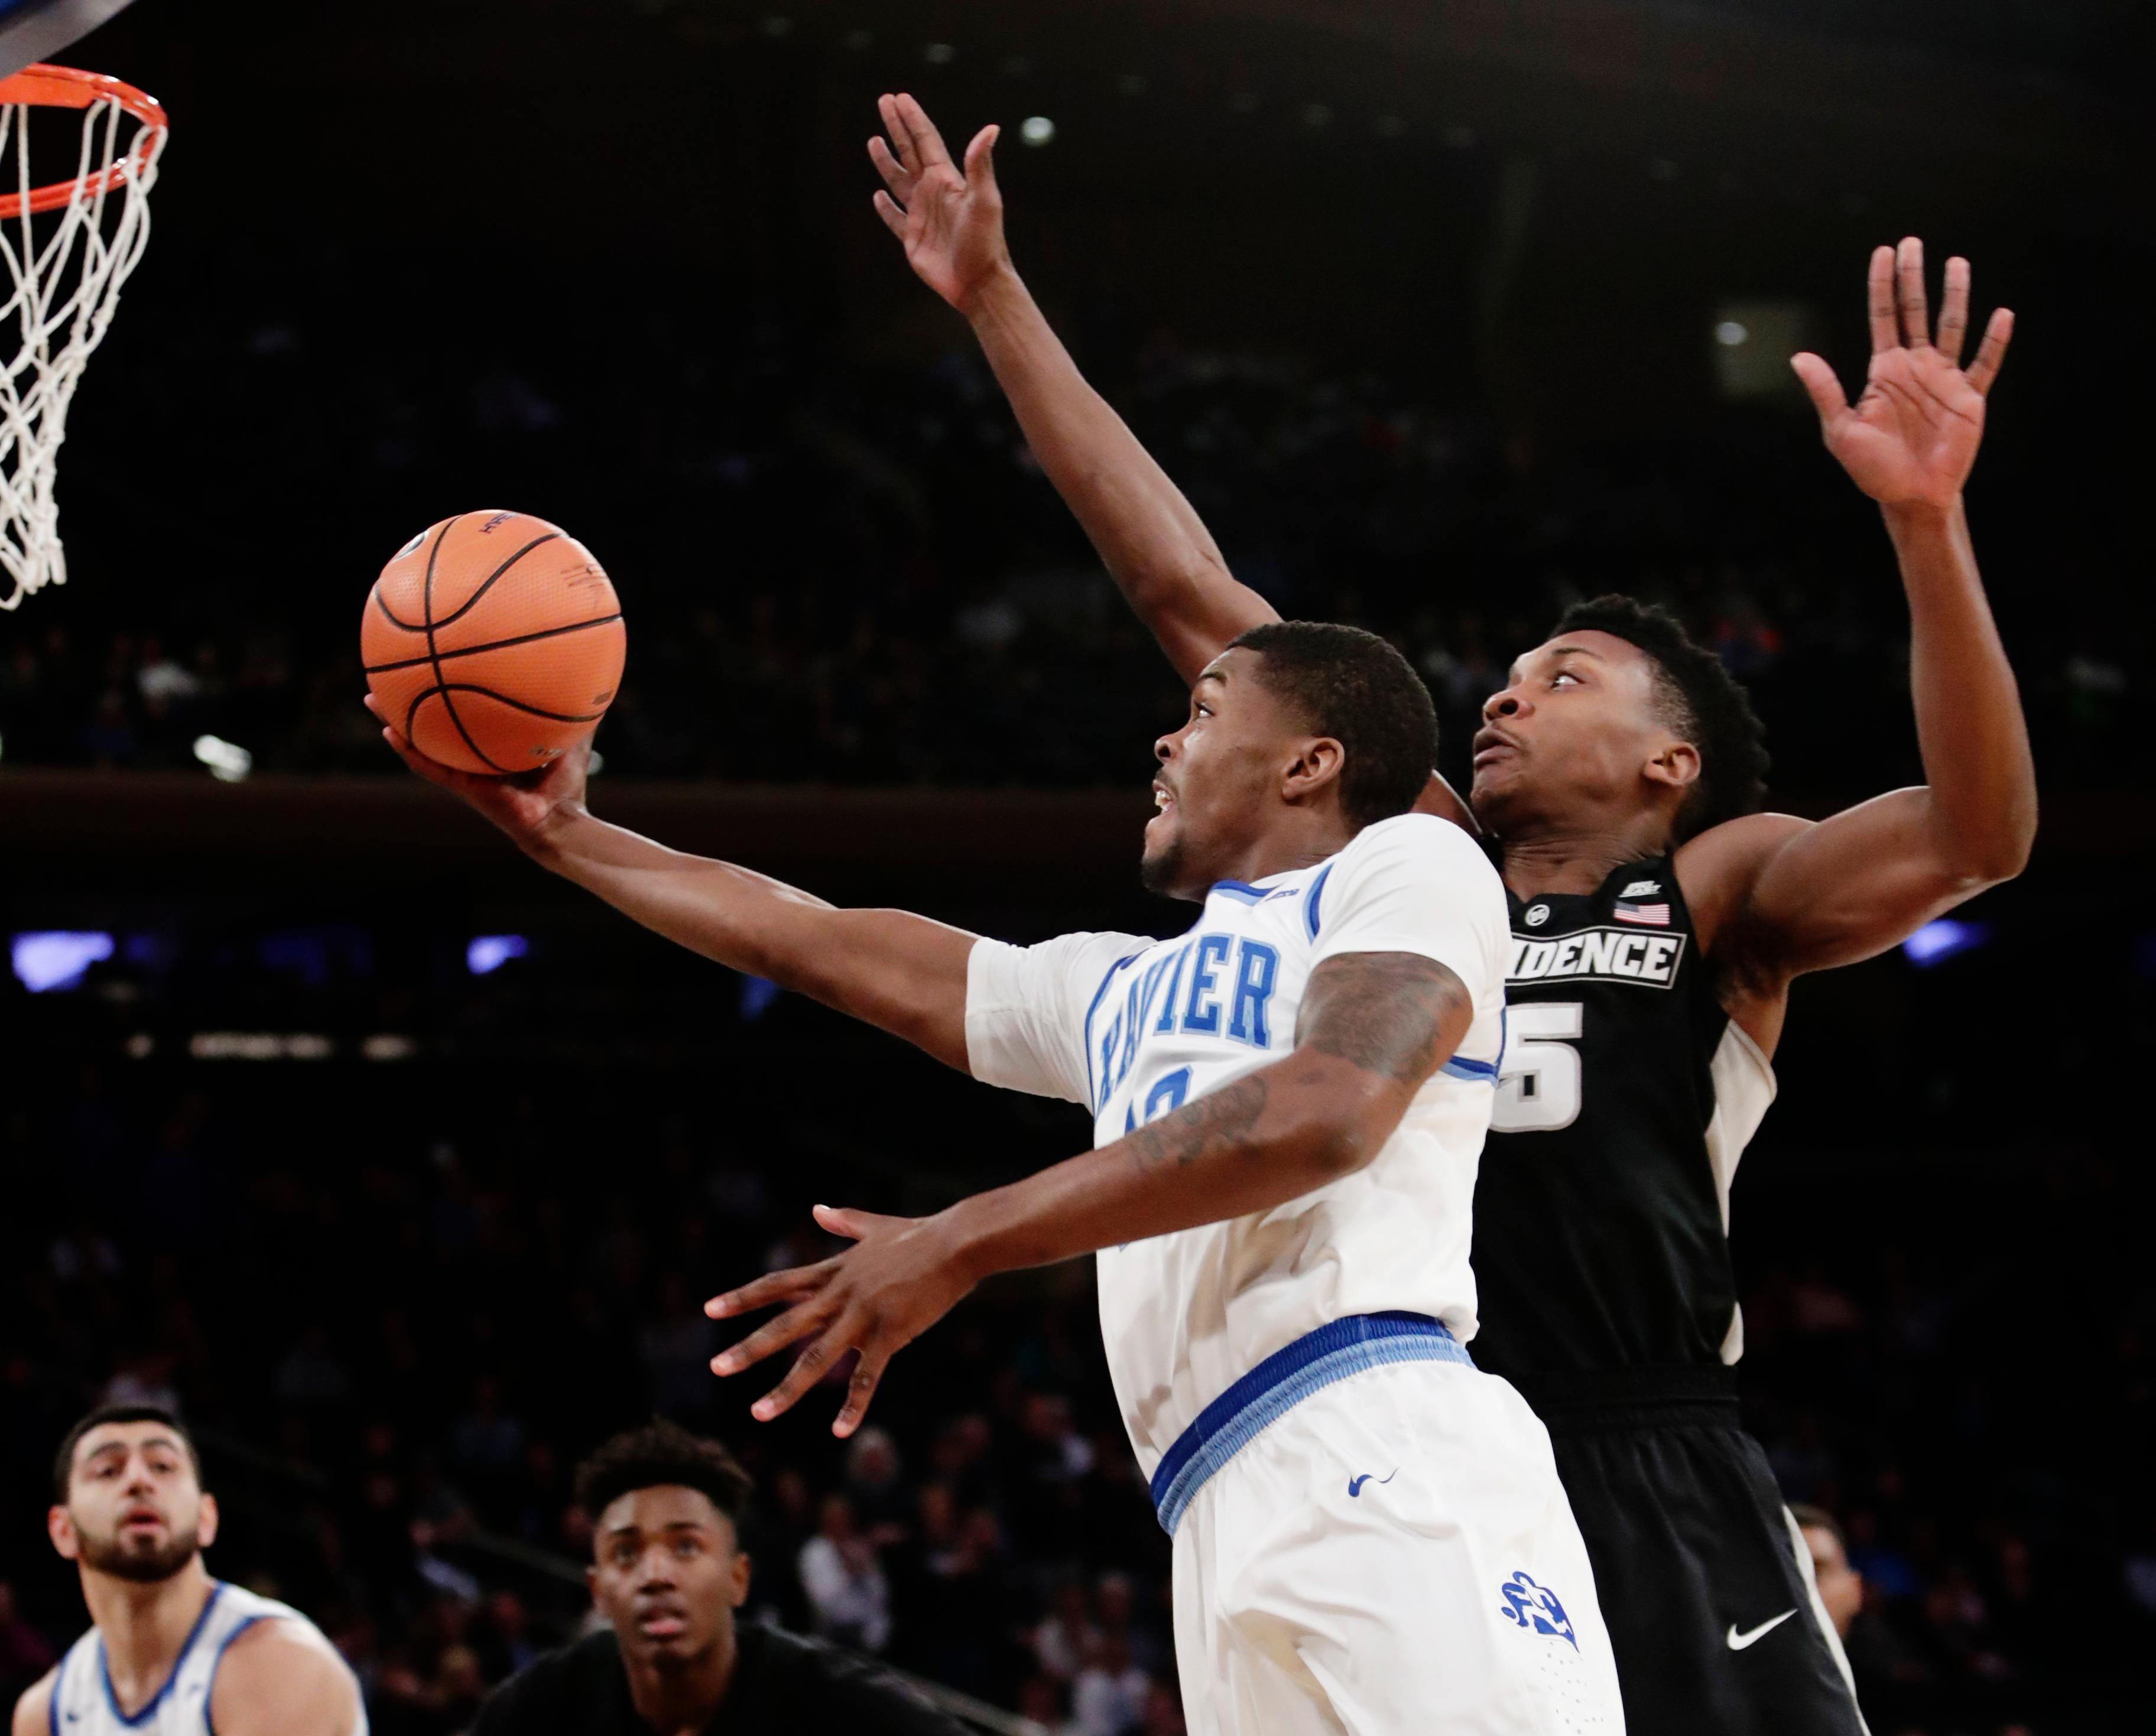 Xavier's Naji Marshall (13) drives past Providence's Rodney Bullock (5) during the first half of an NCAA college basketball game in the Big East men's tournament semifinals Friday, March 9, 2018, in New York. (AP Photo/Frank Franklin II)